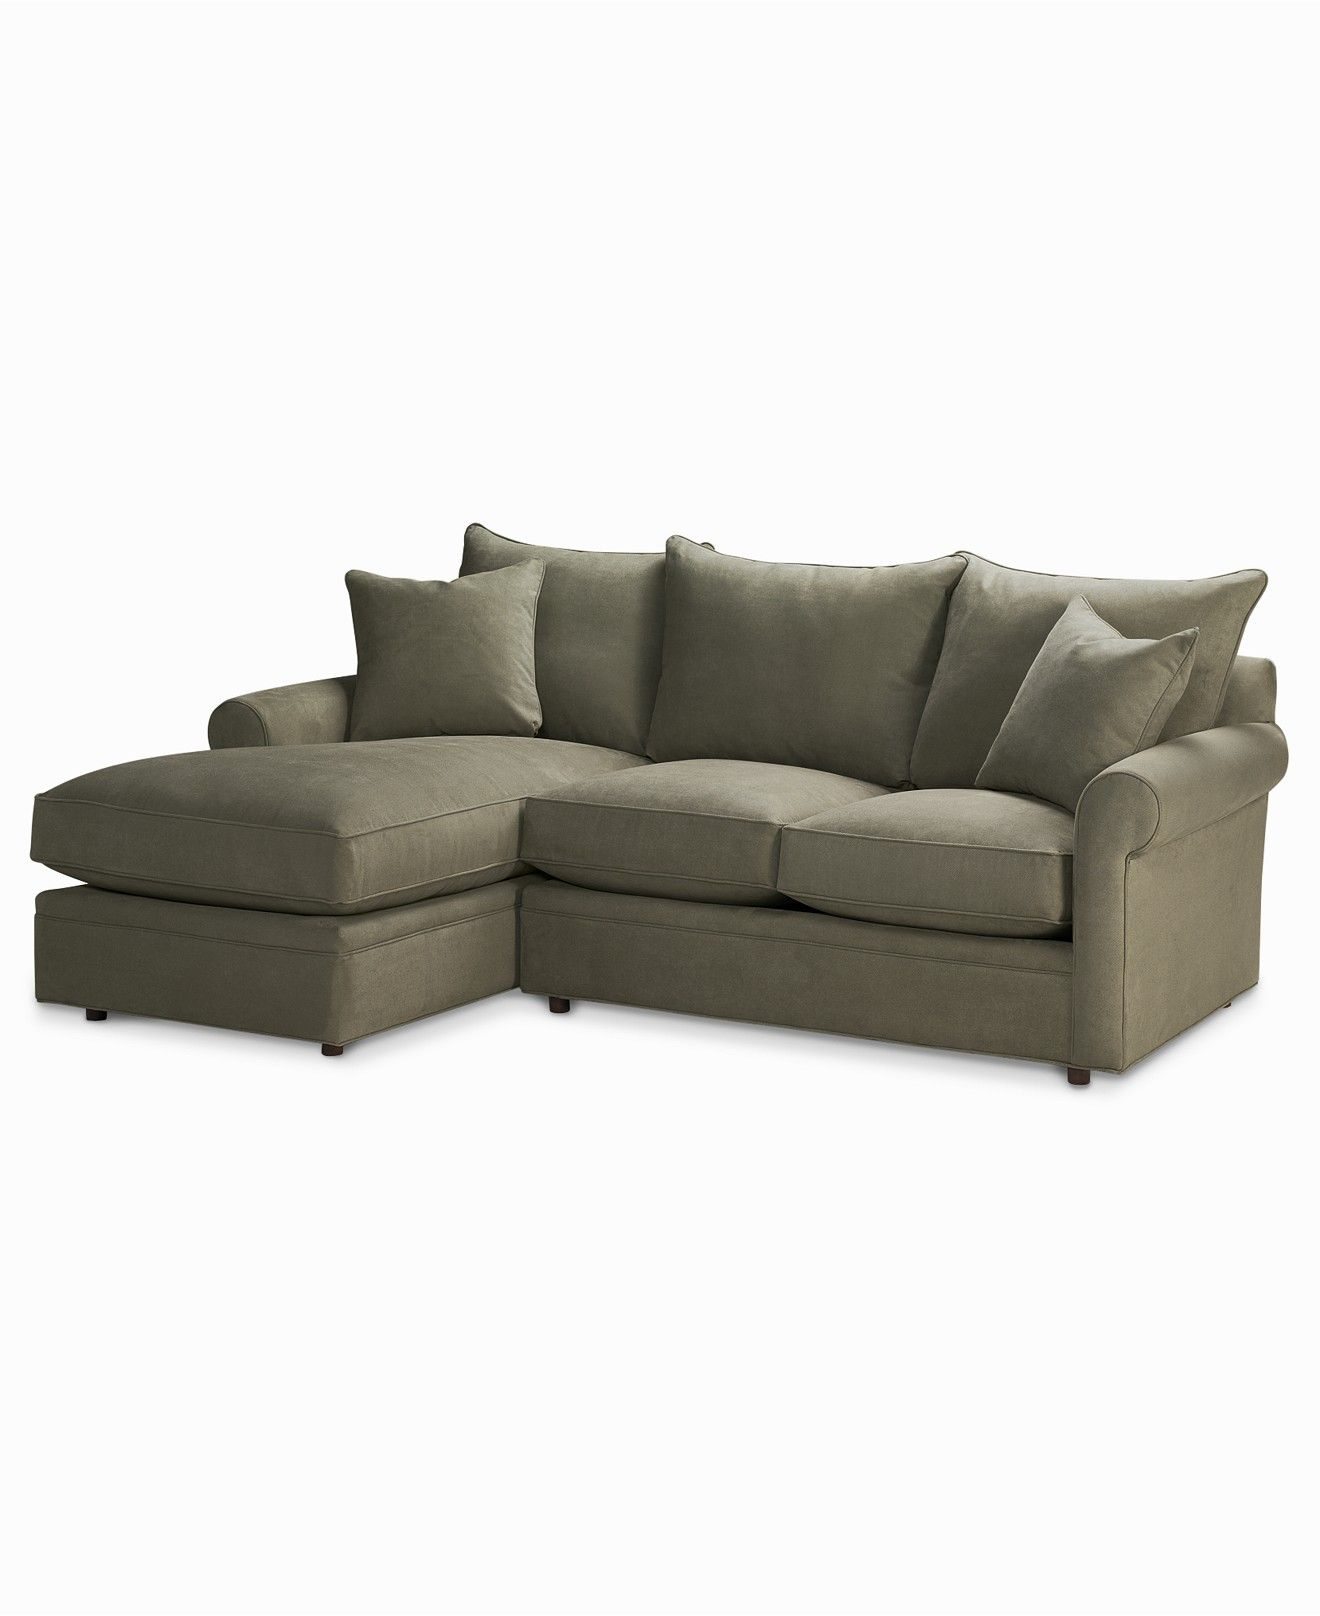 Doss Fabric Microfiber Sectional Sofa, 2 Piece (Loveseat & Chaise ...